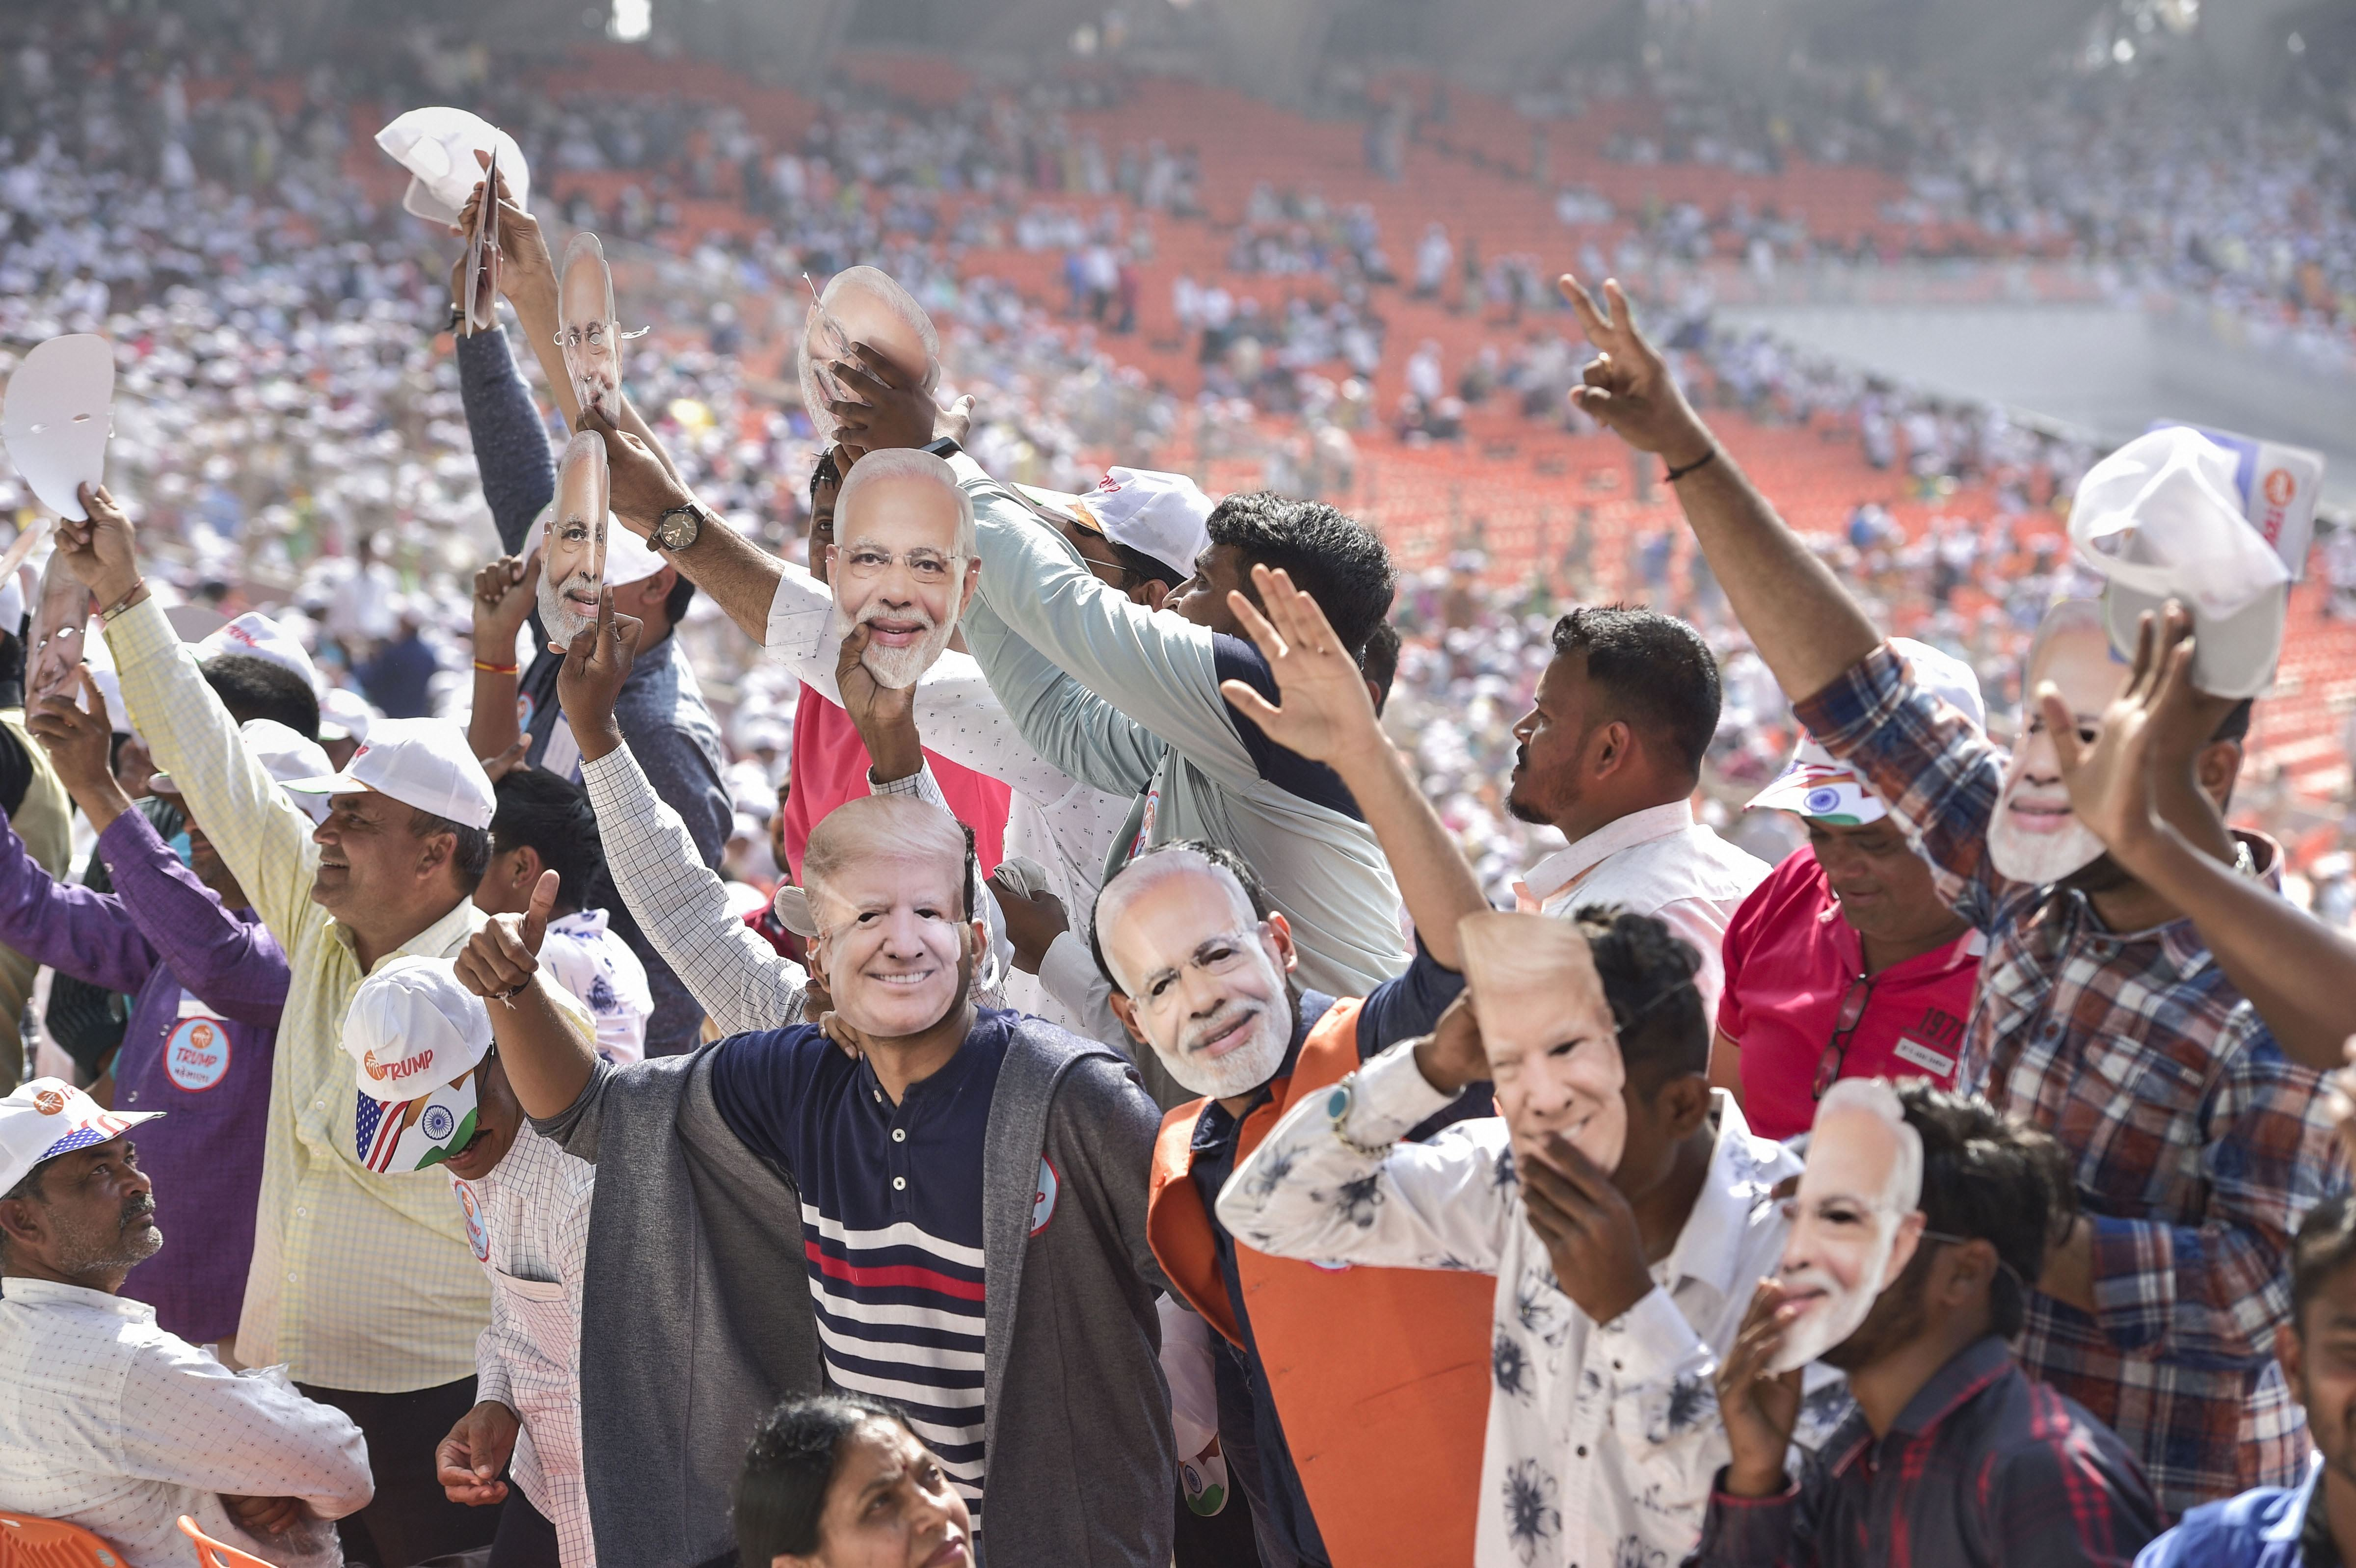 People wearing Prime Minister Narendra Modi's and US President Donald Trump's masks wave as they arrive to attend the 'Namaste Trump' event at Sardar Patel Motera Stadium, in Ahmedabad, Monday, February 24, 2020